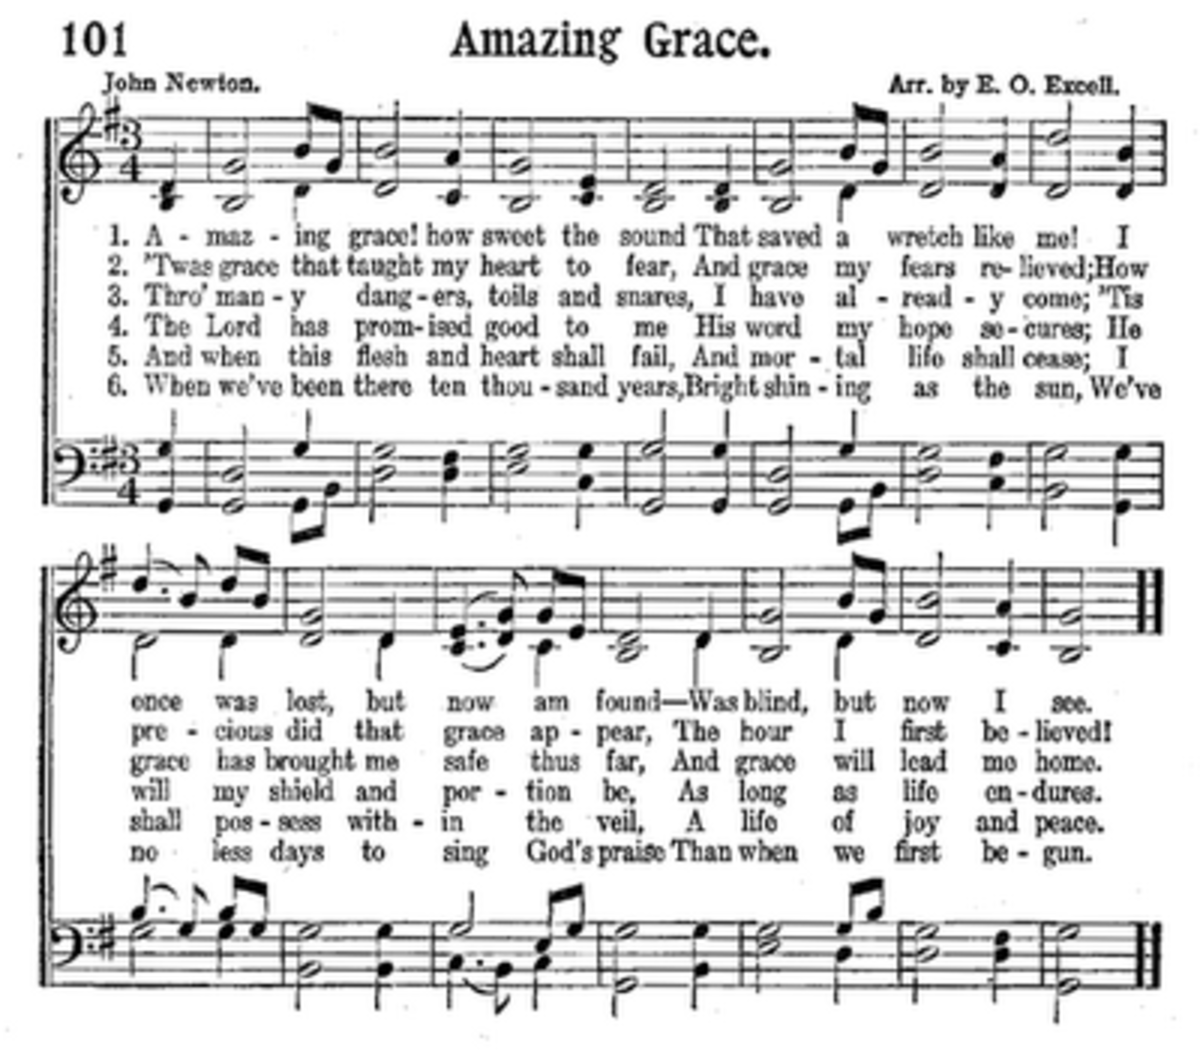 Amazing Grace Free Piano Sheet Music With Lyrics: Amazing Grace In 50 Languages